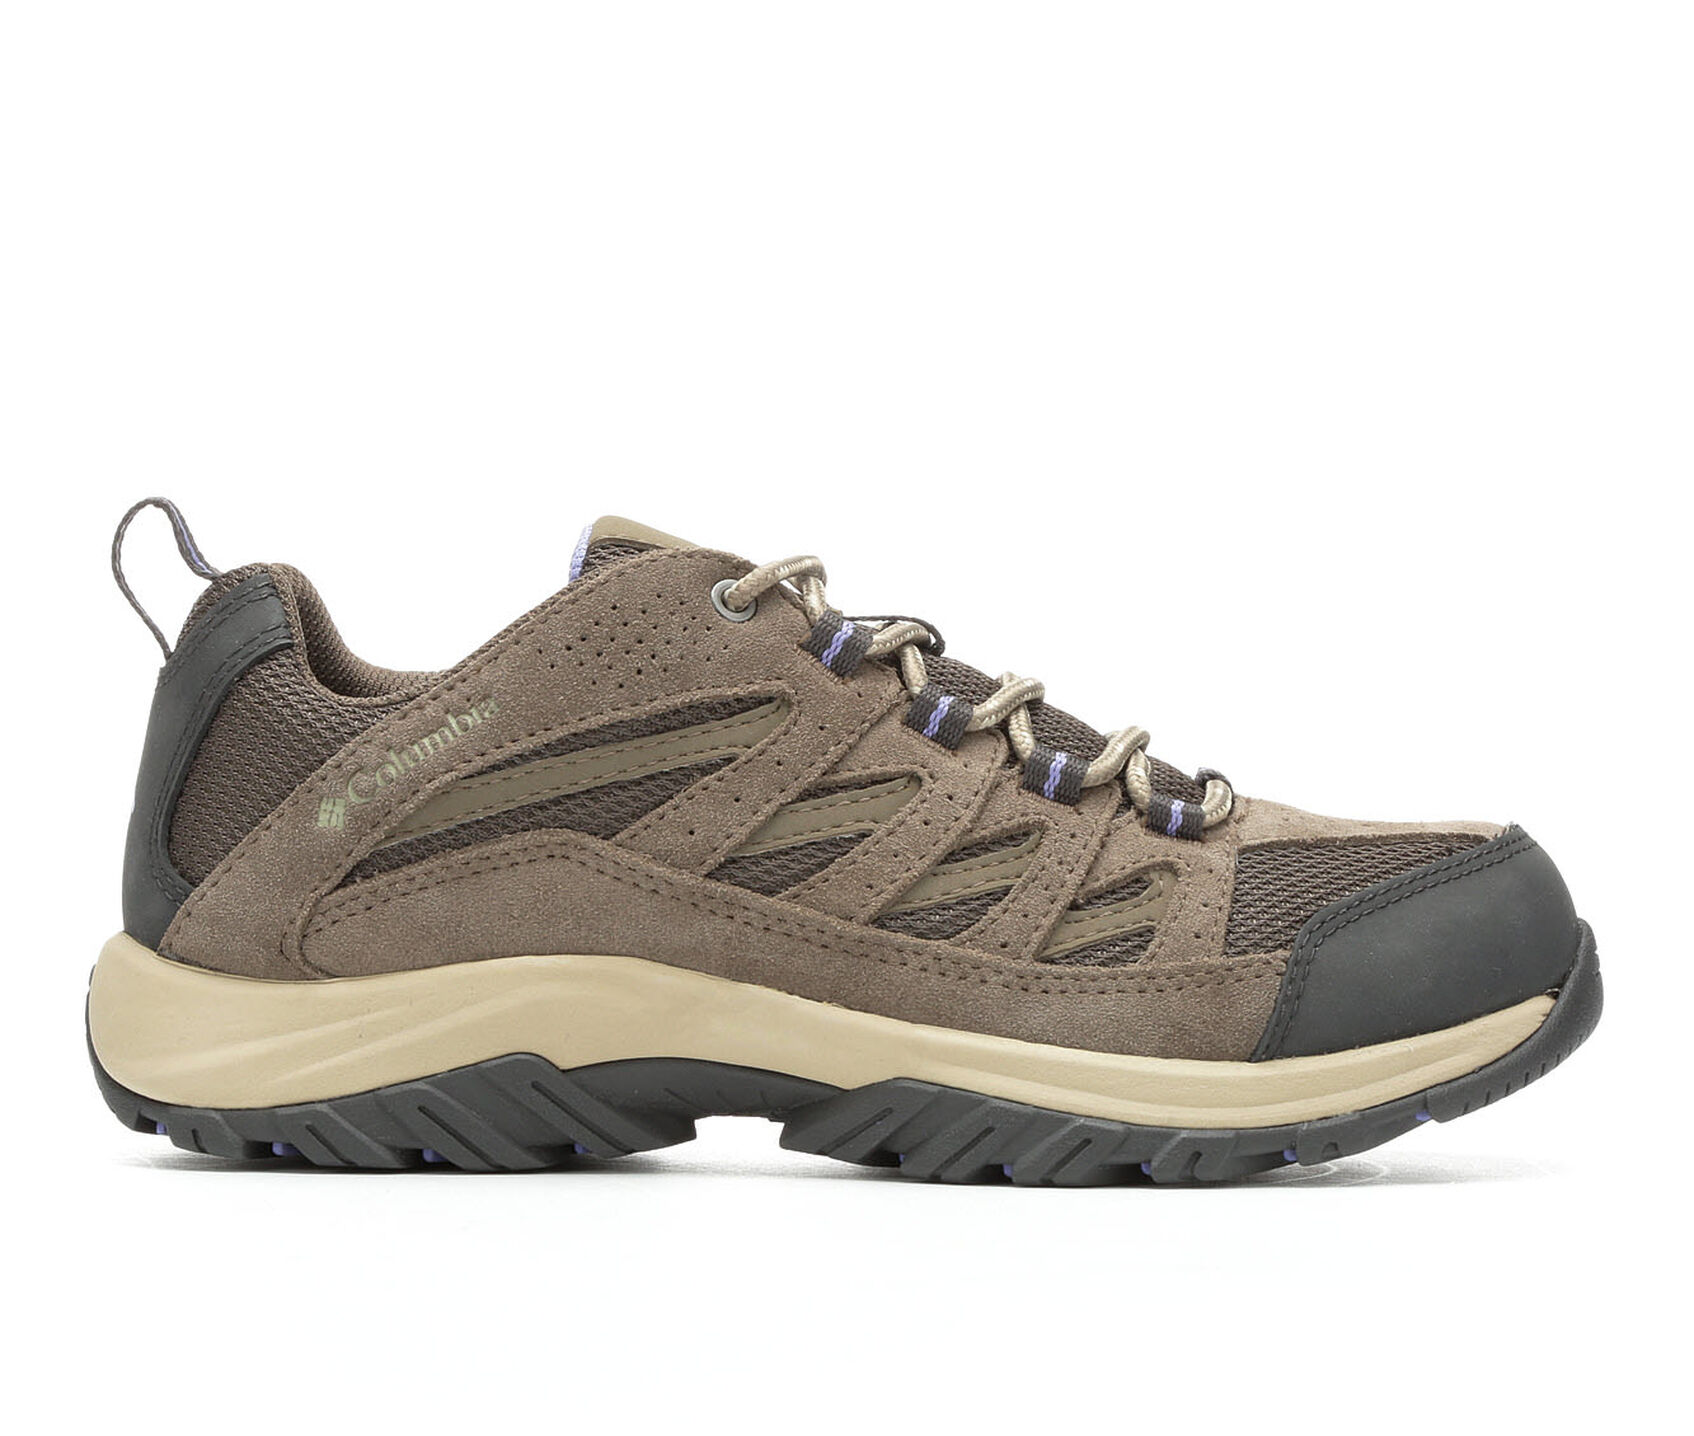 8ee0805e654 Women's Columbia Crestwood Low Hiking Shoes